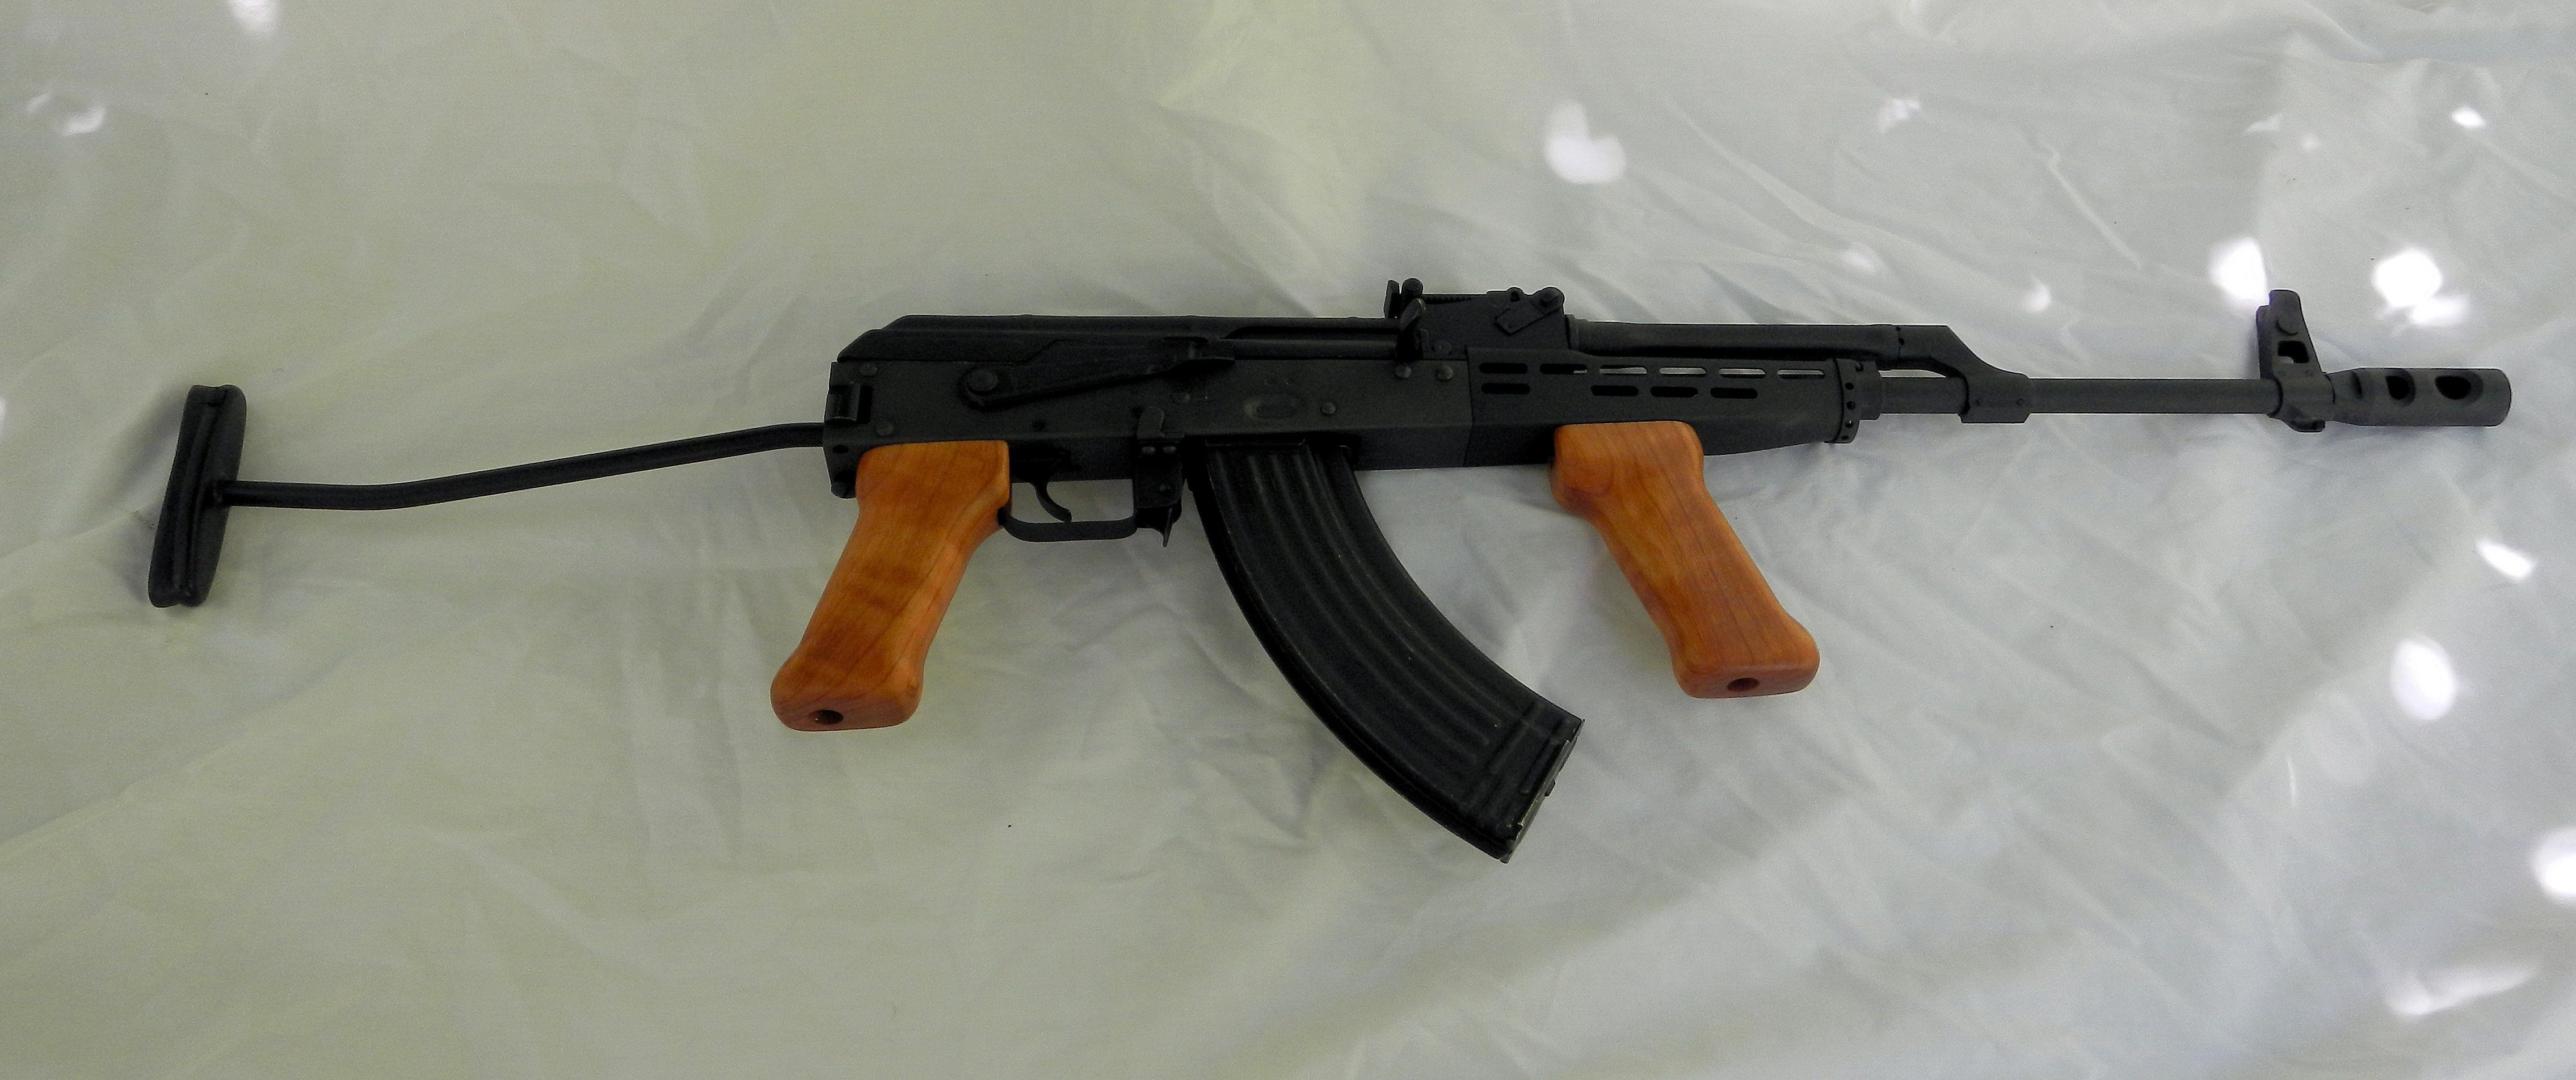 The Hungarian AMD-65 with a FEG receiver is well built and